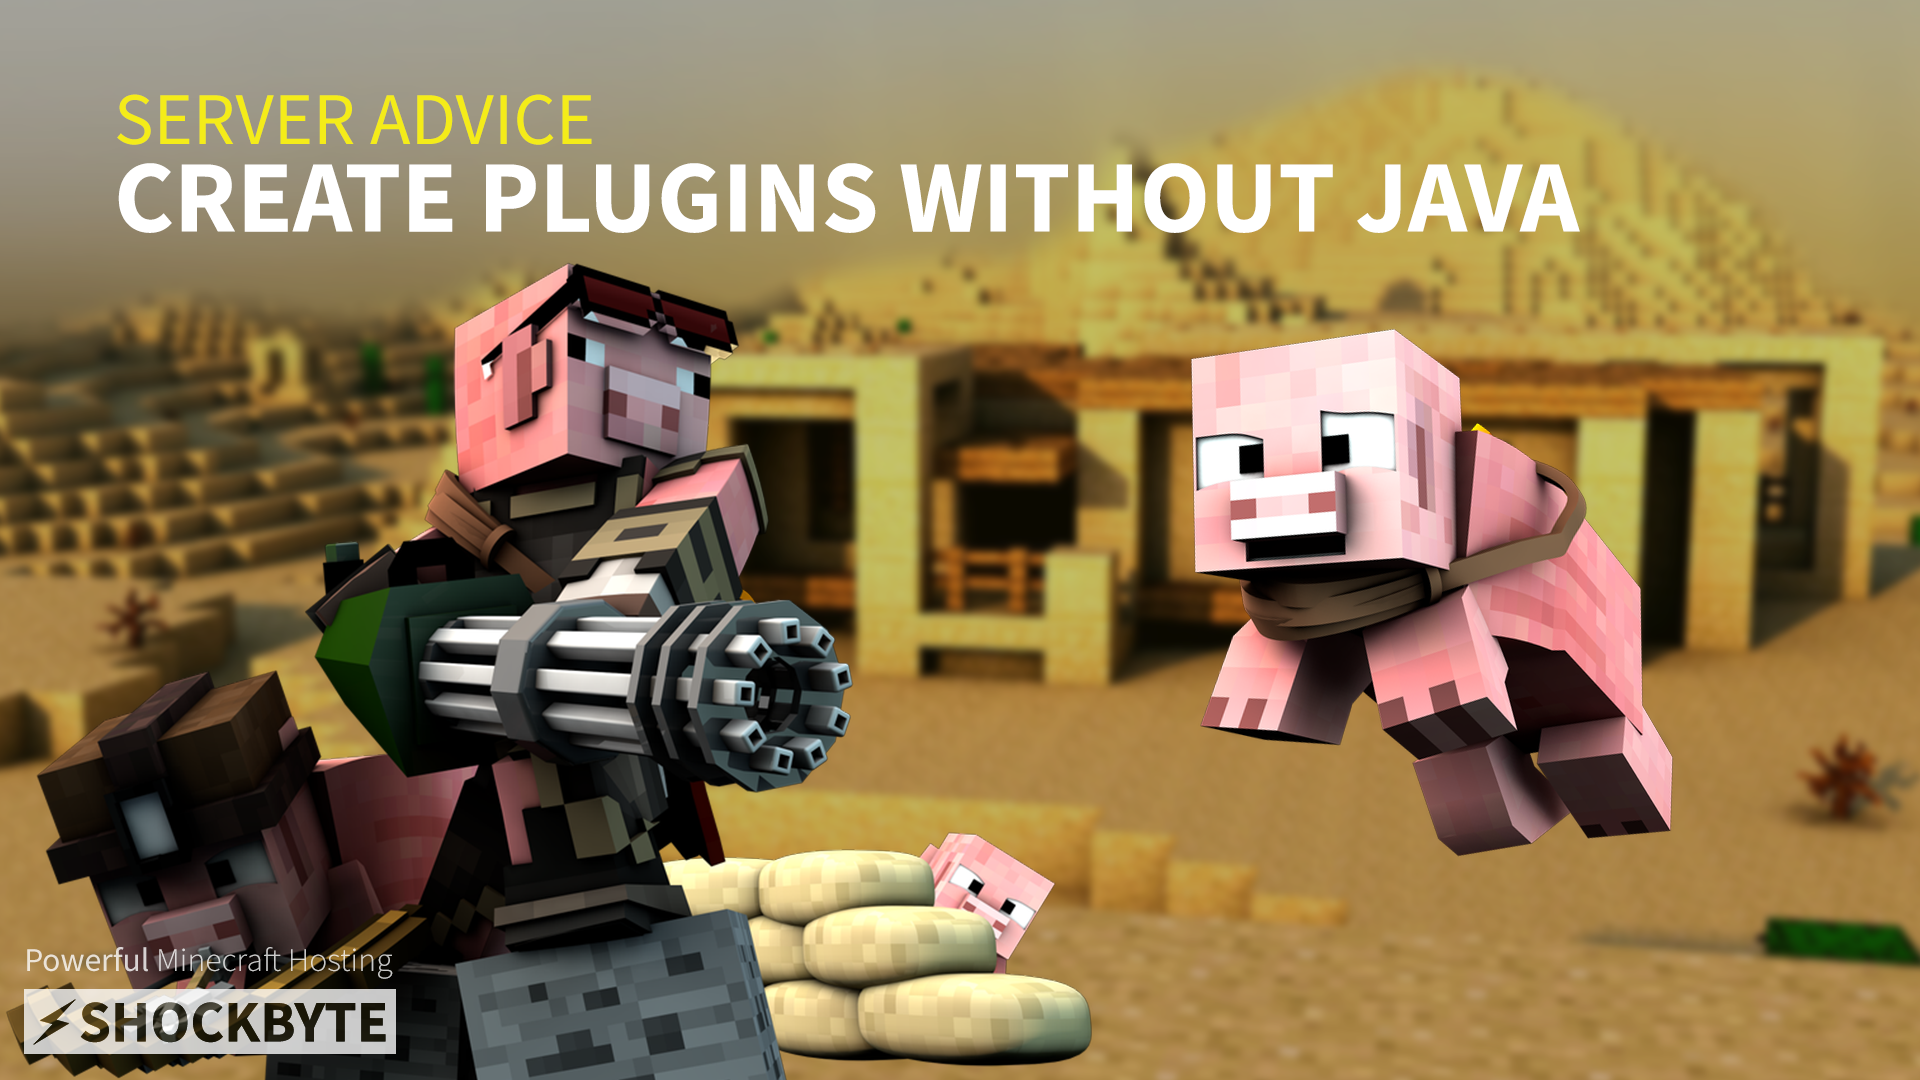 Create Minecraft plugins without Java - Shockbyte - Medium